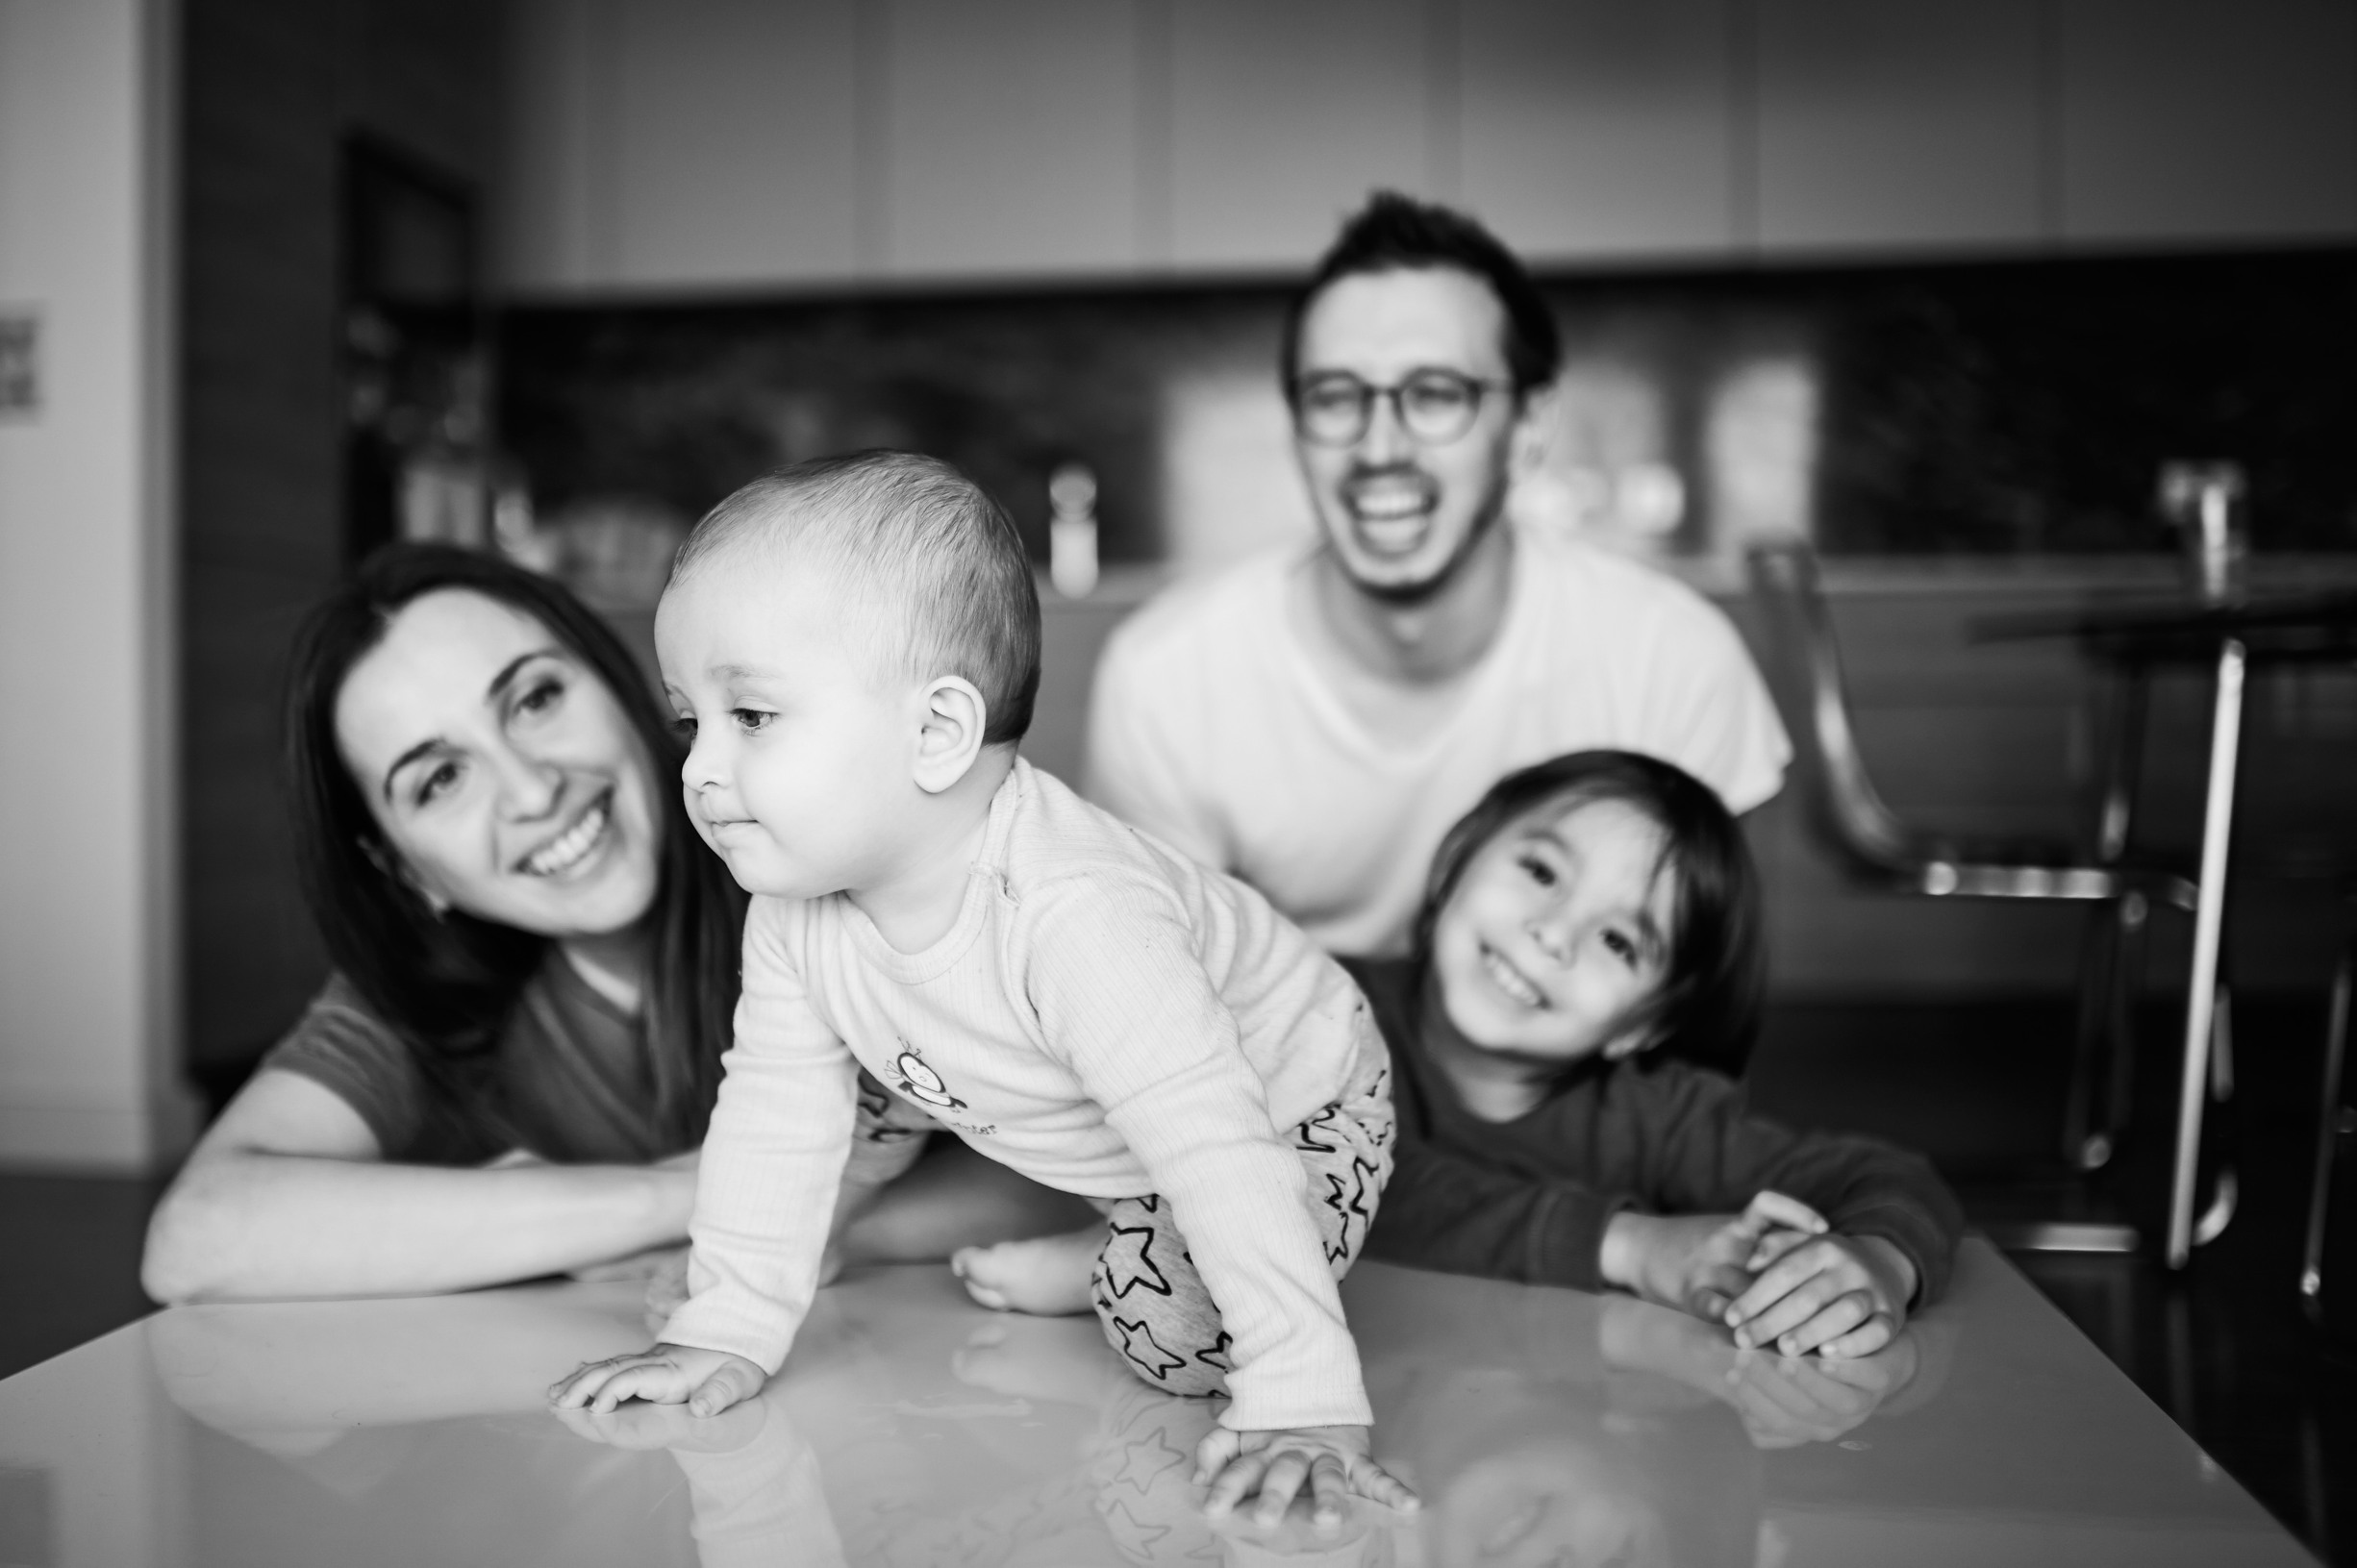 Monika is a very professional, passionate, friendly and natural photographer. Many thanks for your lovely photos. You captured the moments in our life and gave us an unforgettable gift with these amazing photos. - - Sinem & YenalFamily Photography | Greenwich Peninsula 2019